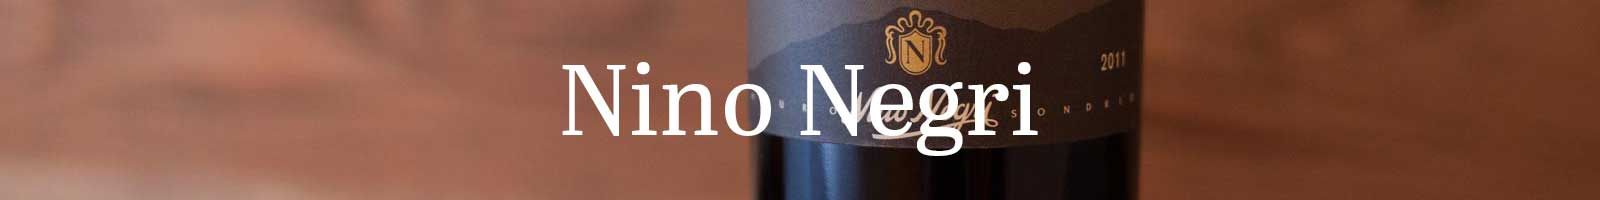 Essential Winemakers of Italy: Nino Negri